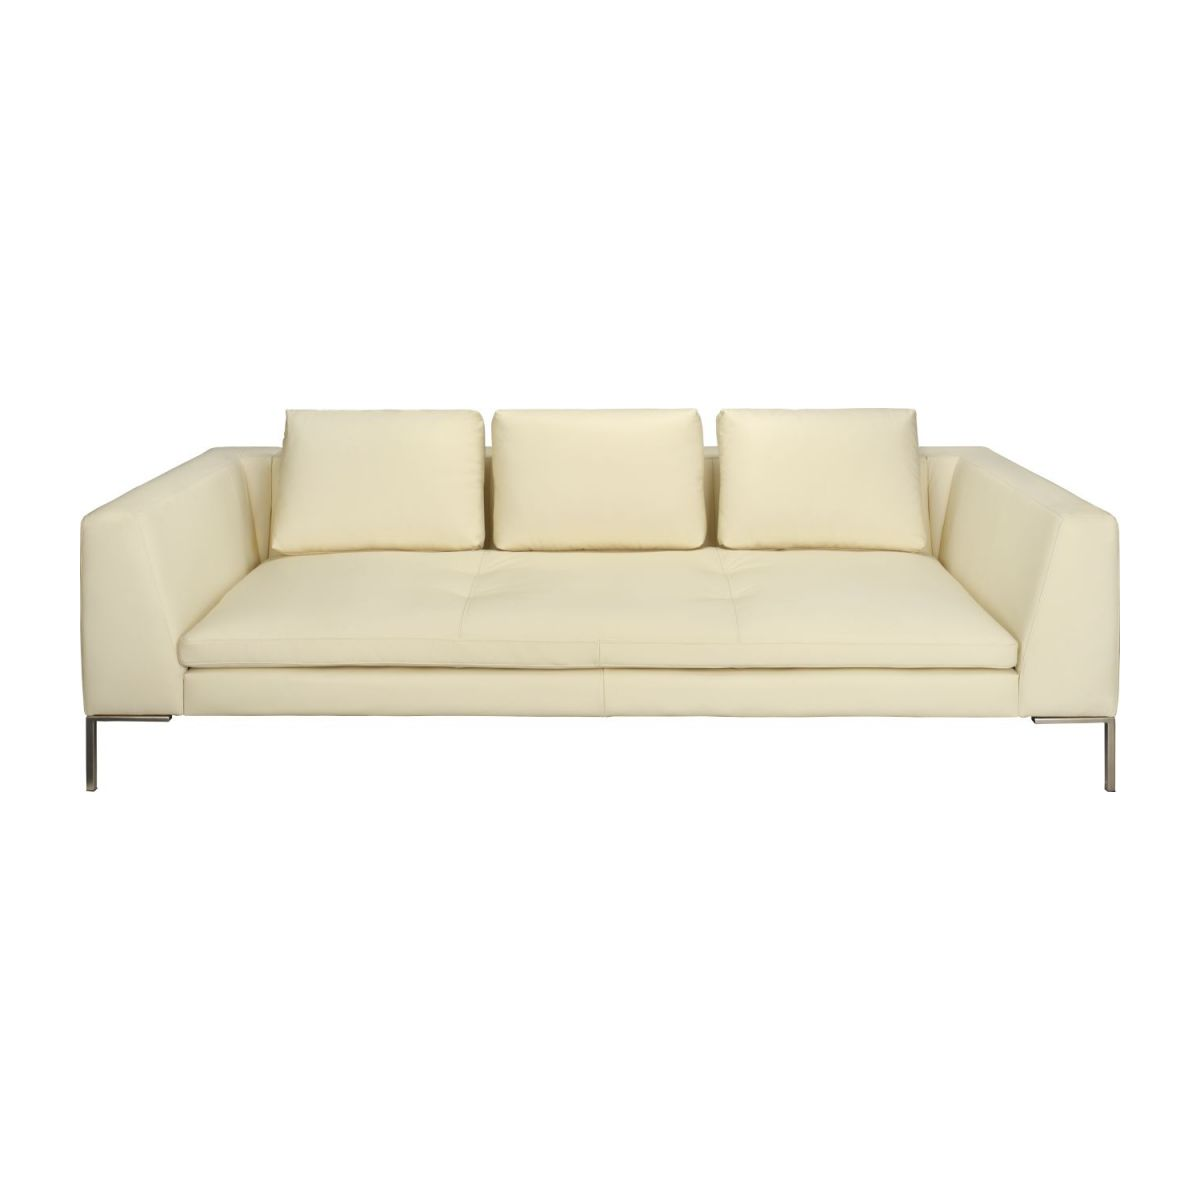 3 seater sofa in Eton veined leather, cream n°2